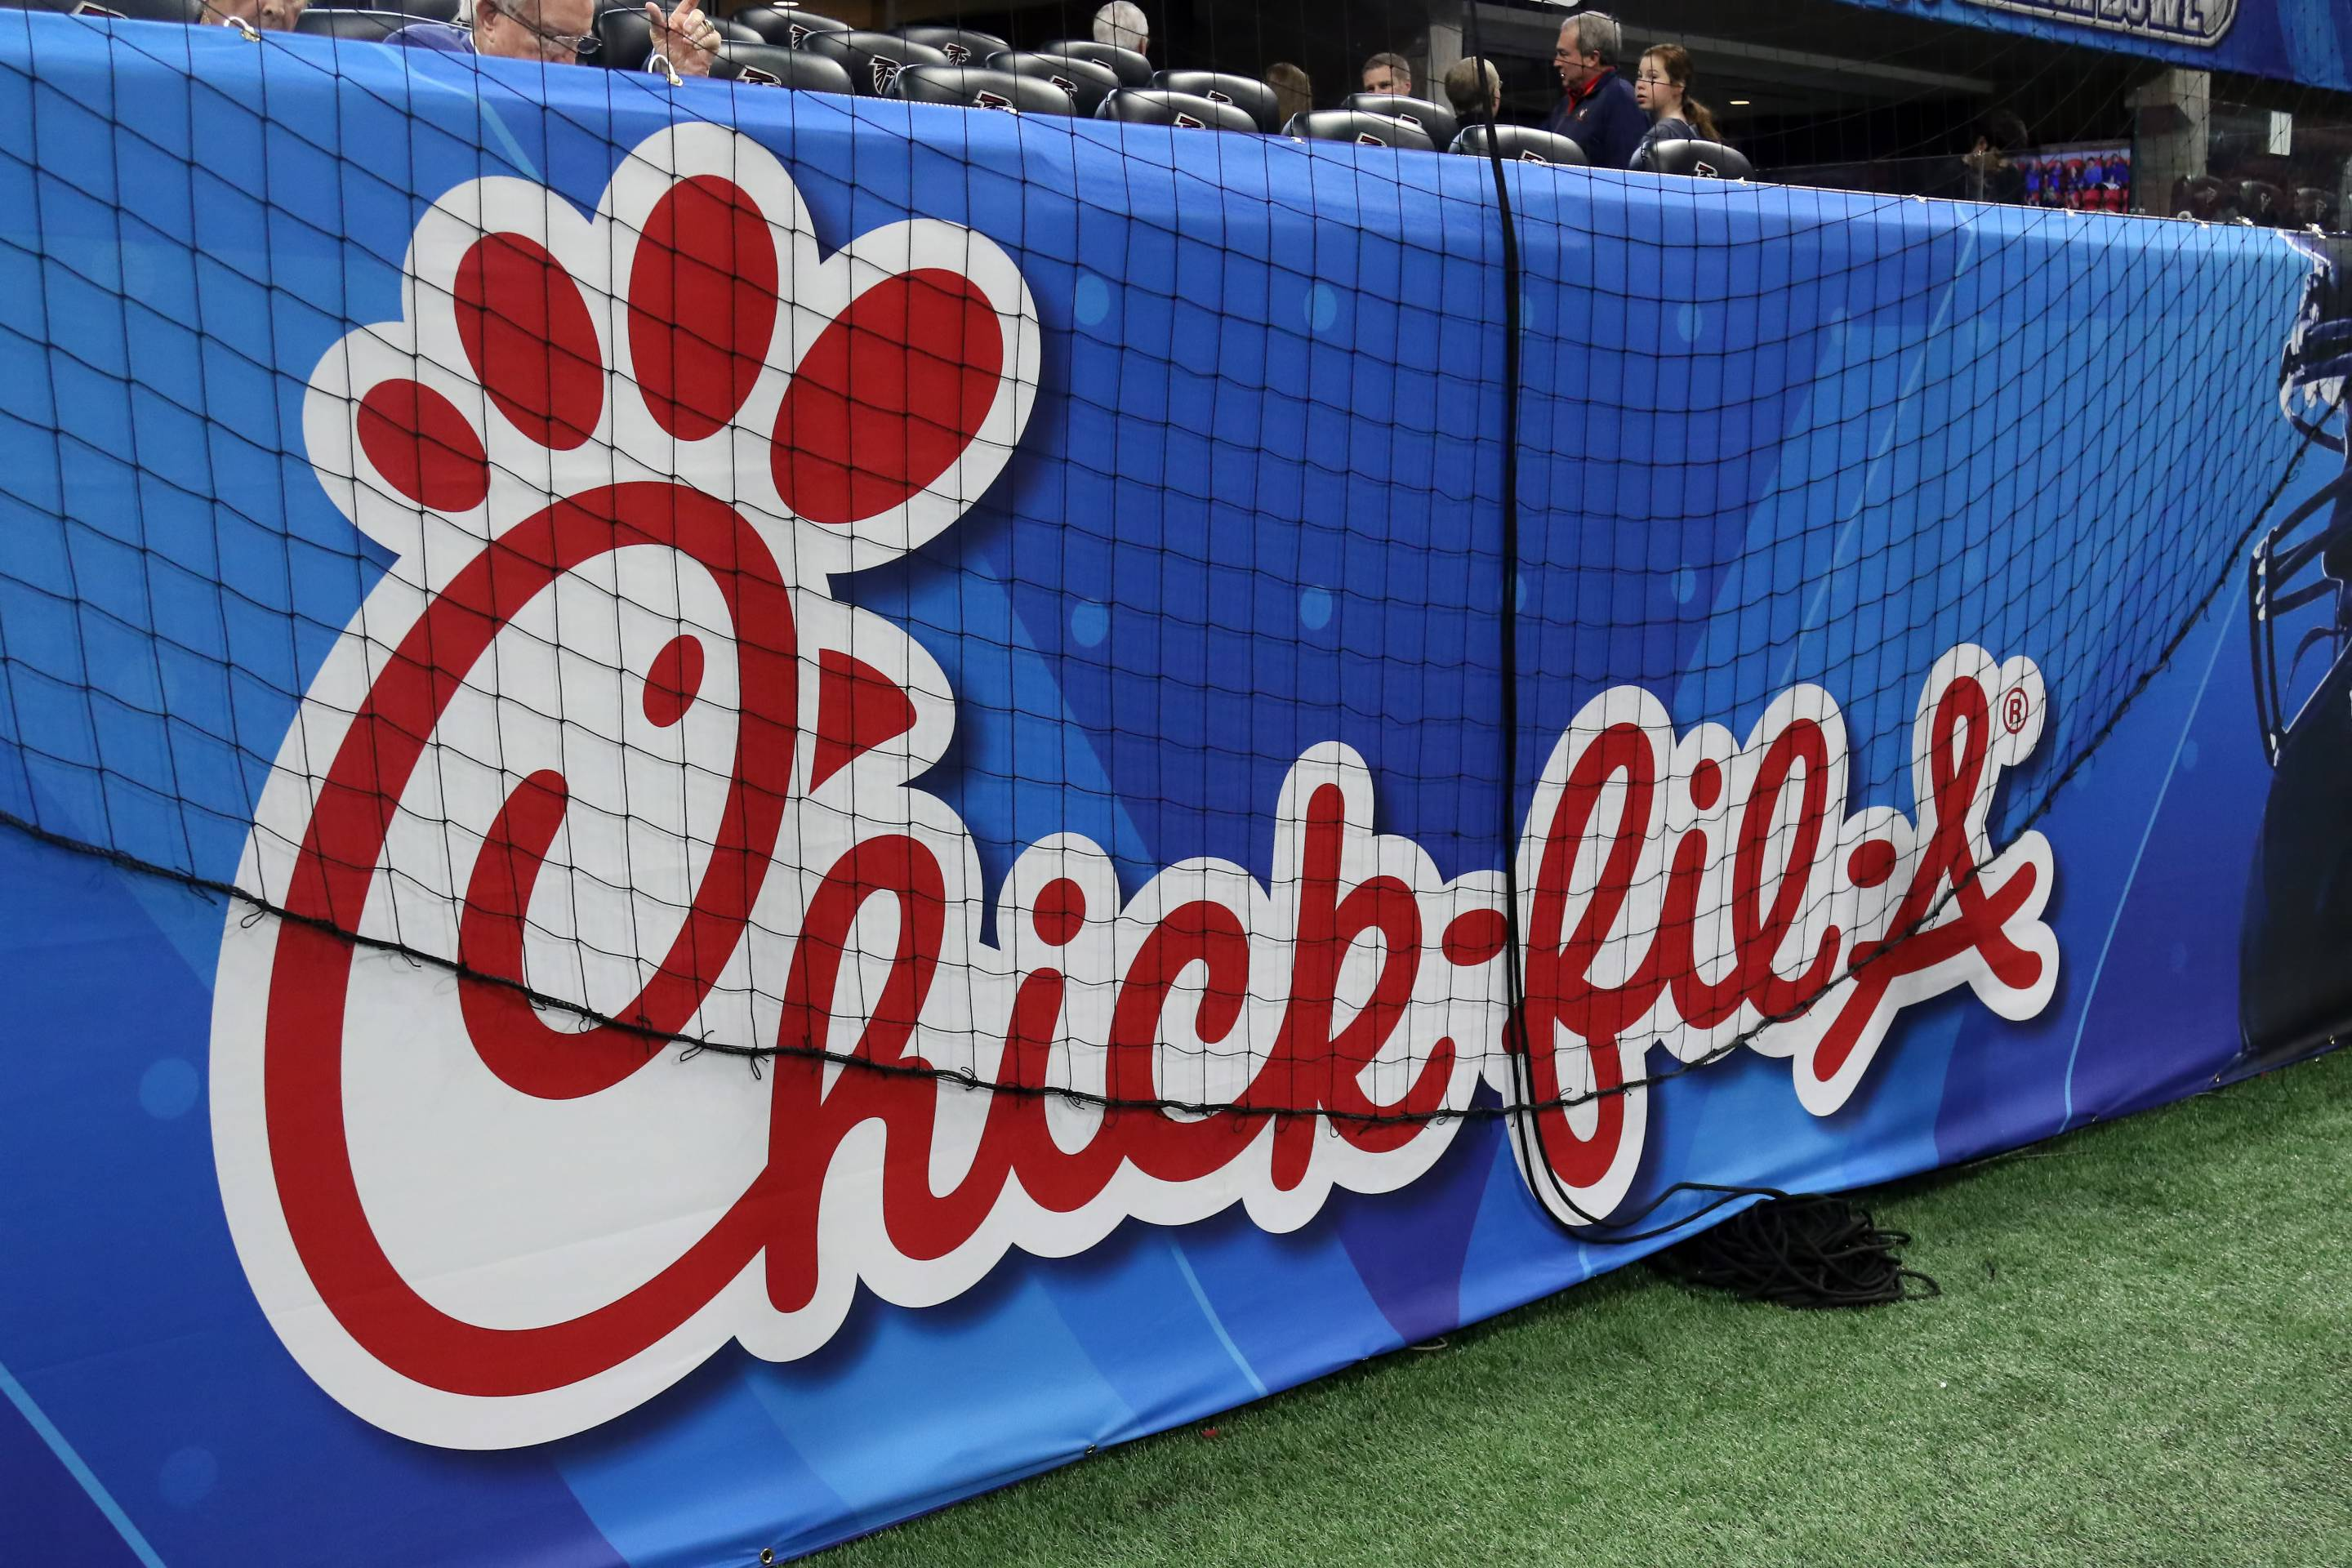 COLLEGE FOOTBALL: DEC 29 Chick-fil-A Peach Bowl - Florida v Michigan